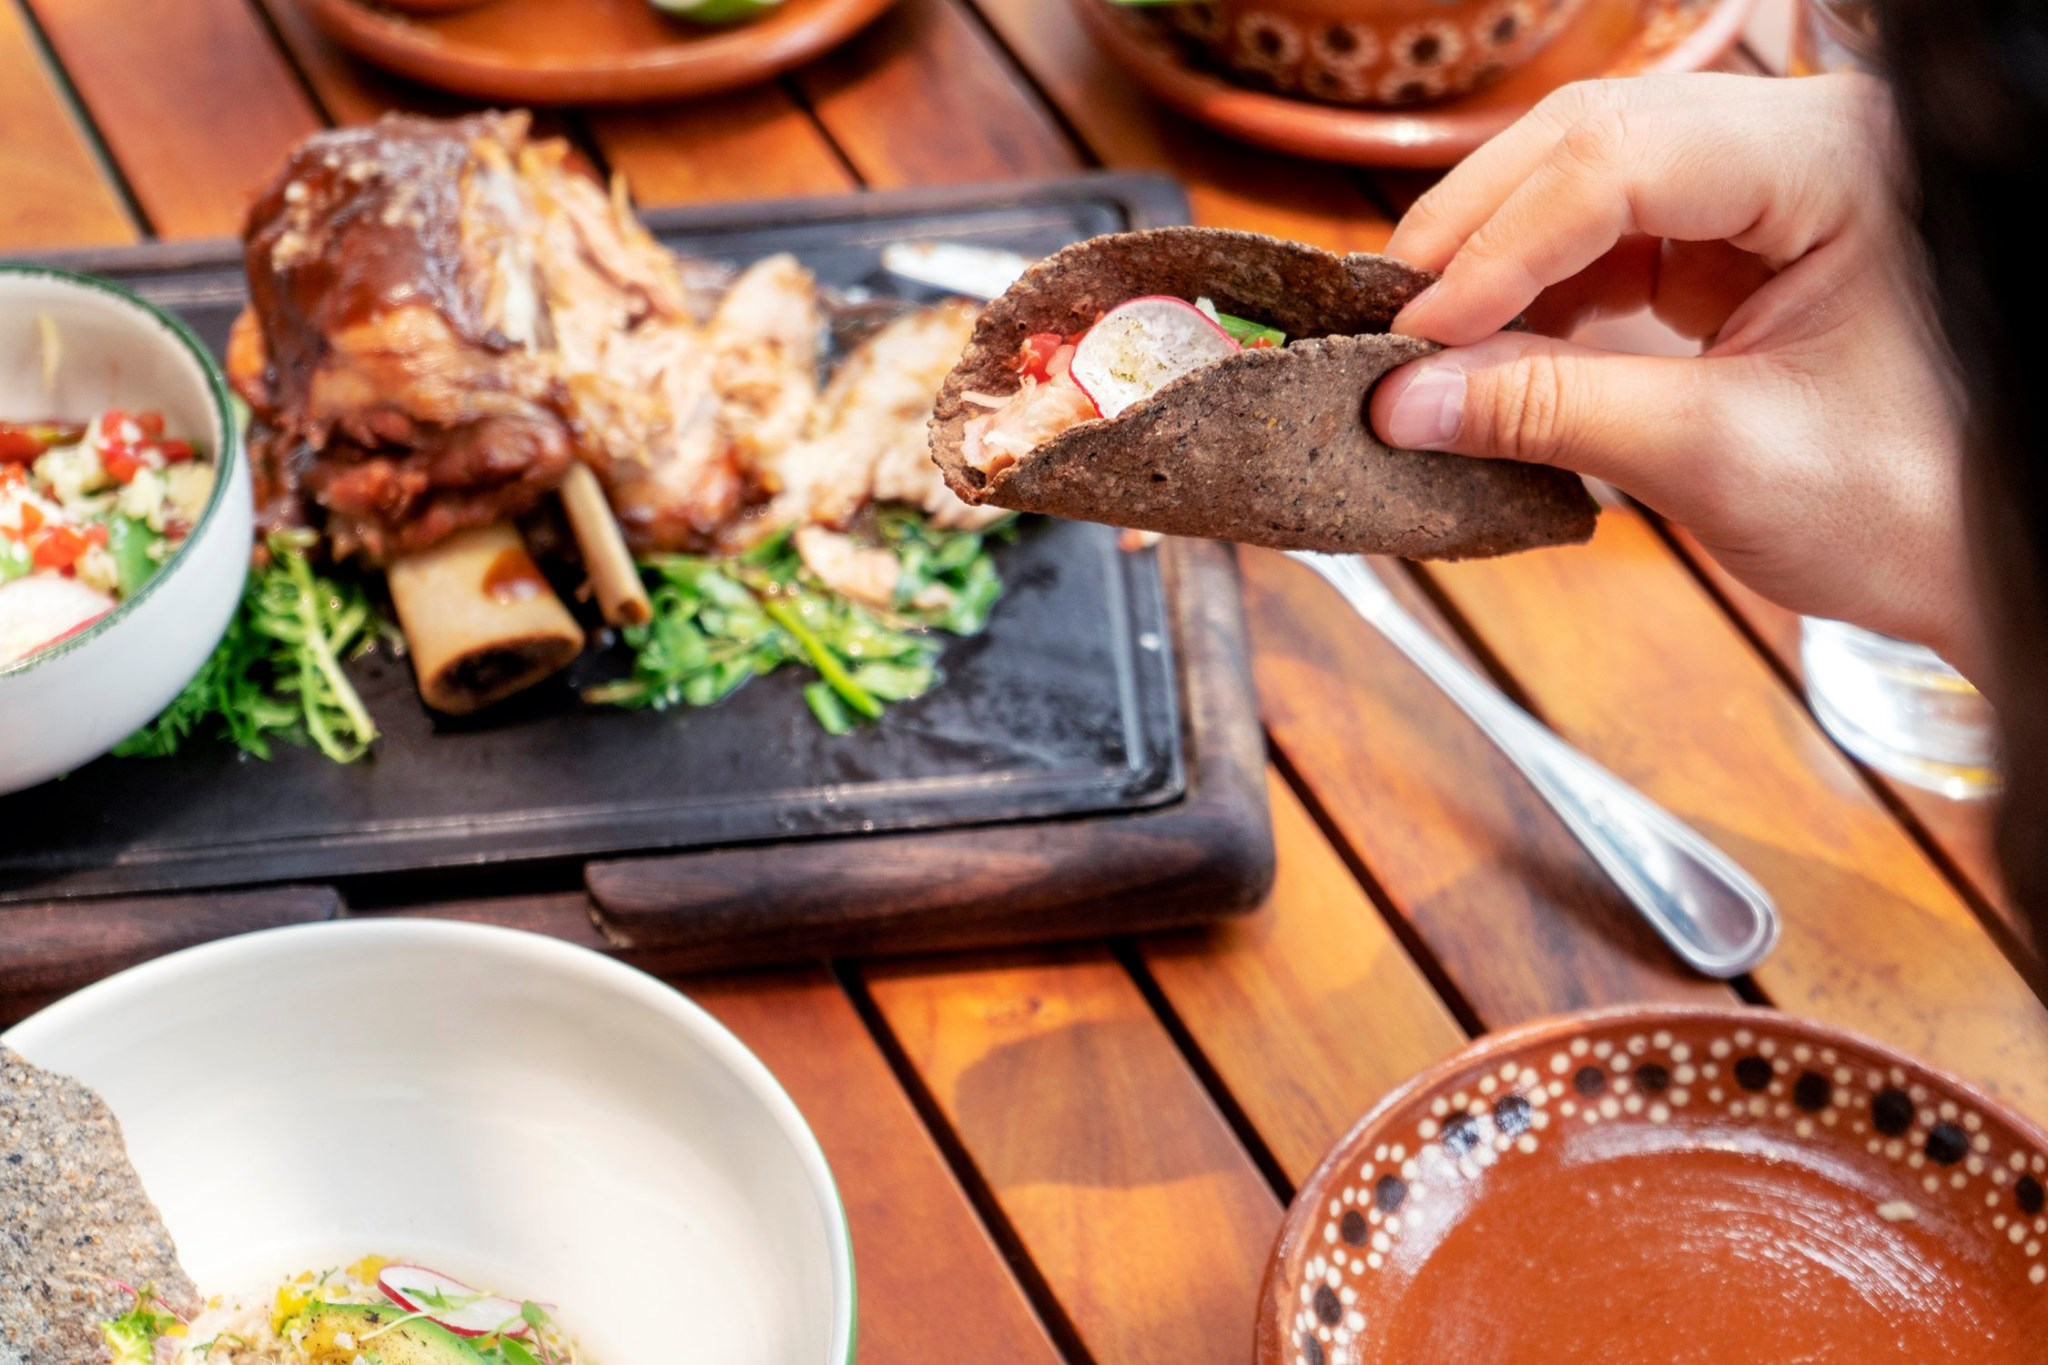 A hand holding a corn tortilla taco with meat on a bone in the background of the table.